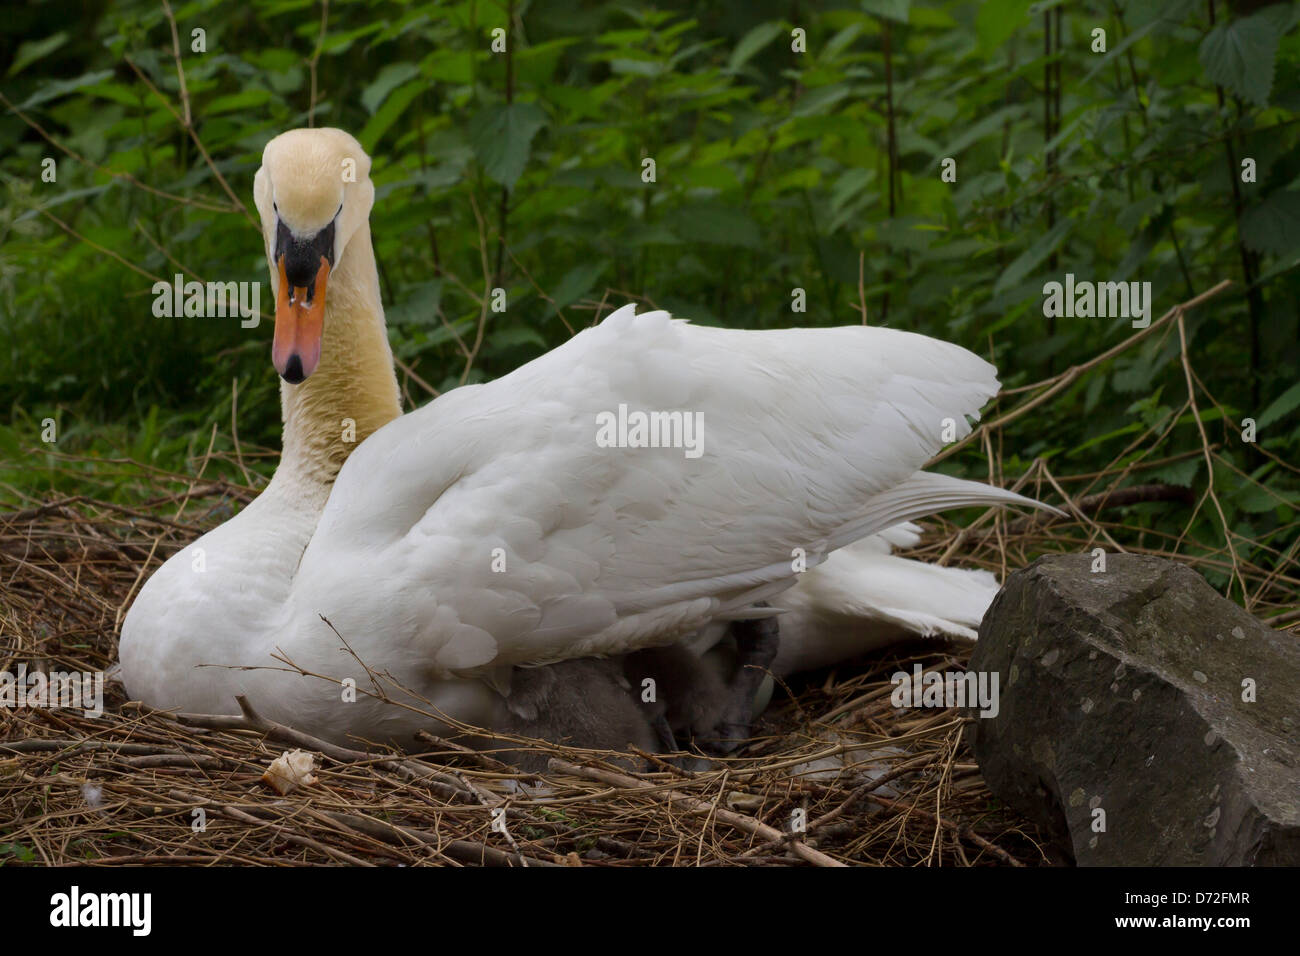 Mother swan with baby swans in her nest. Stock Photo